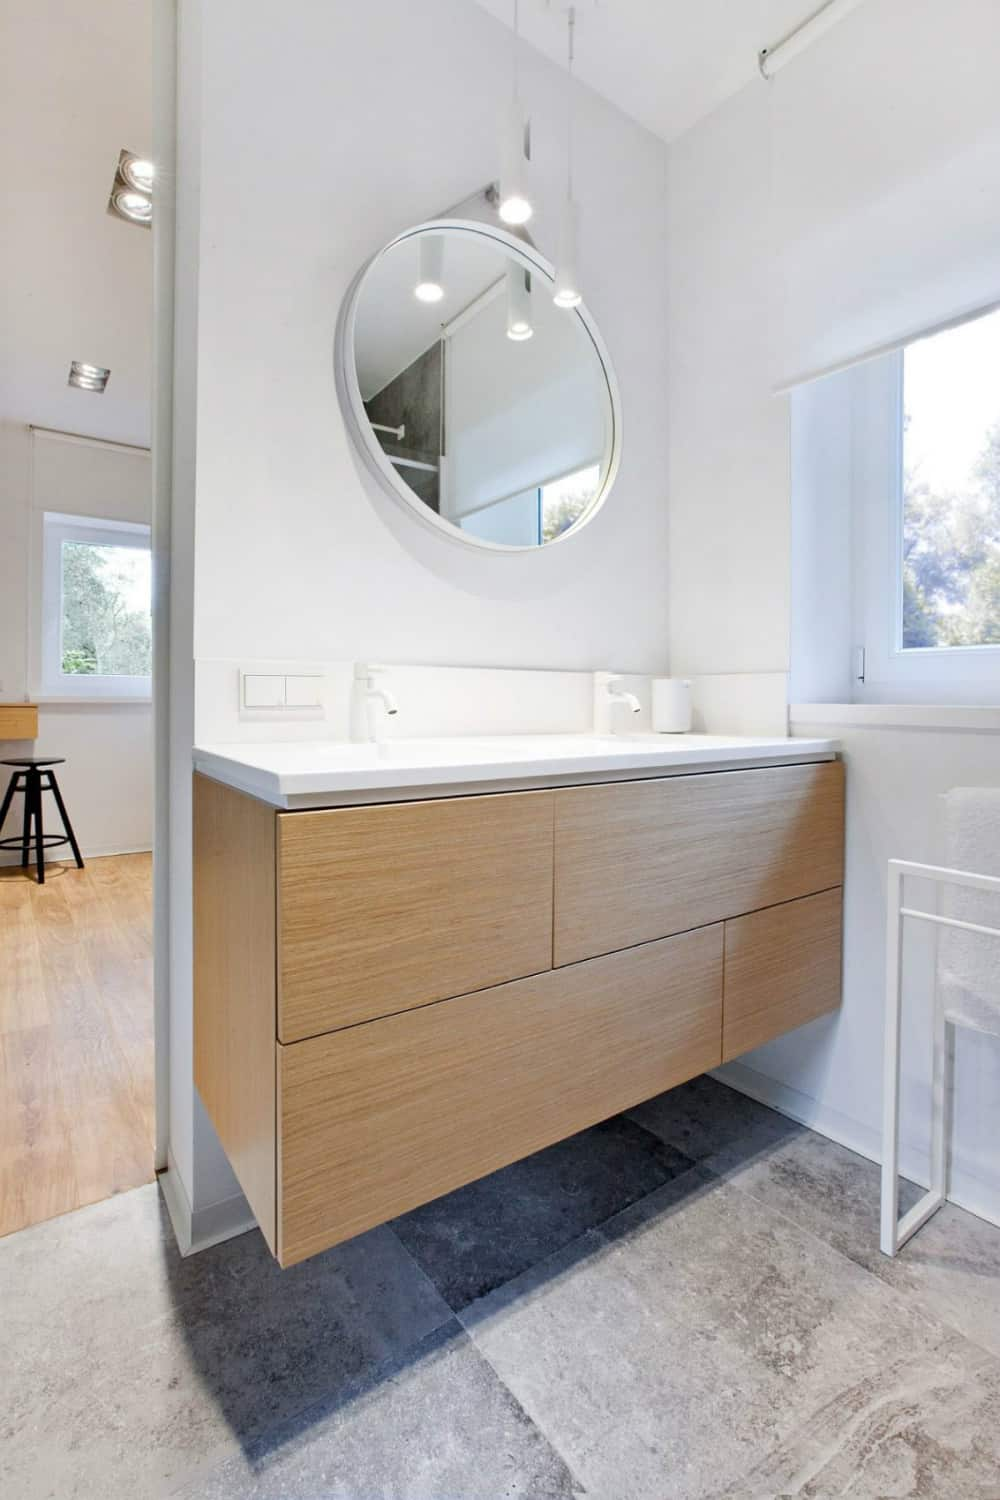 Modest bathroom echoes the kitchen with white hardware